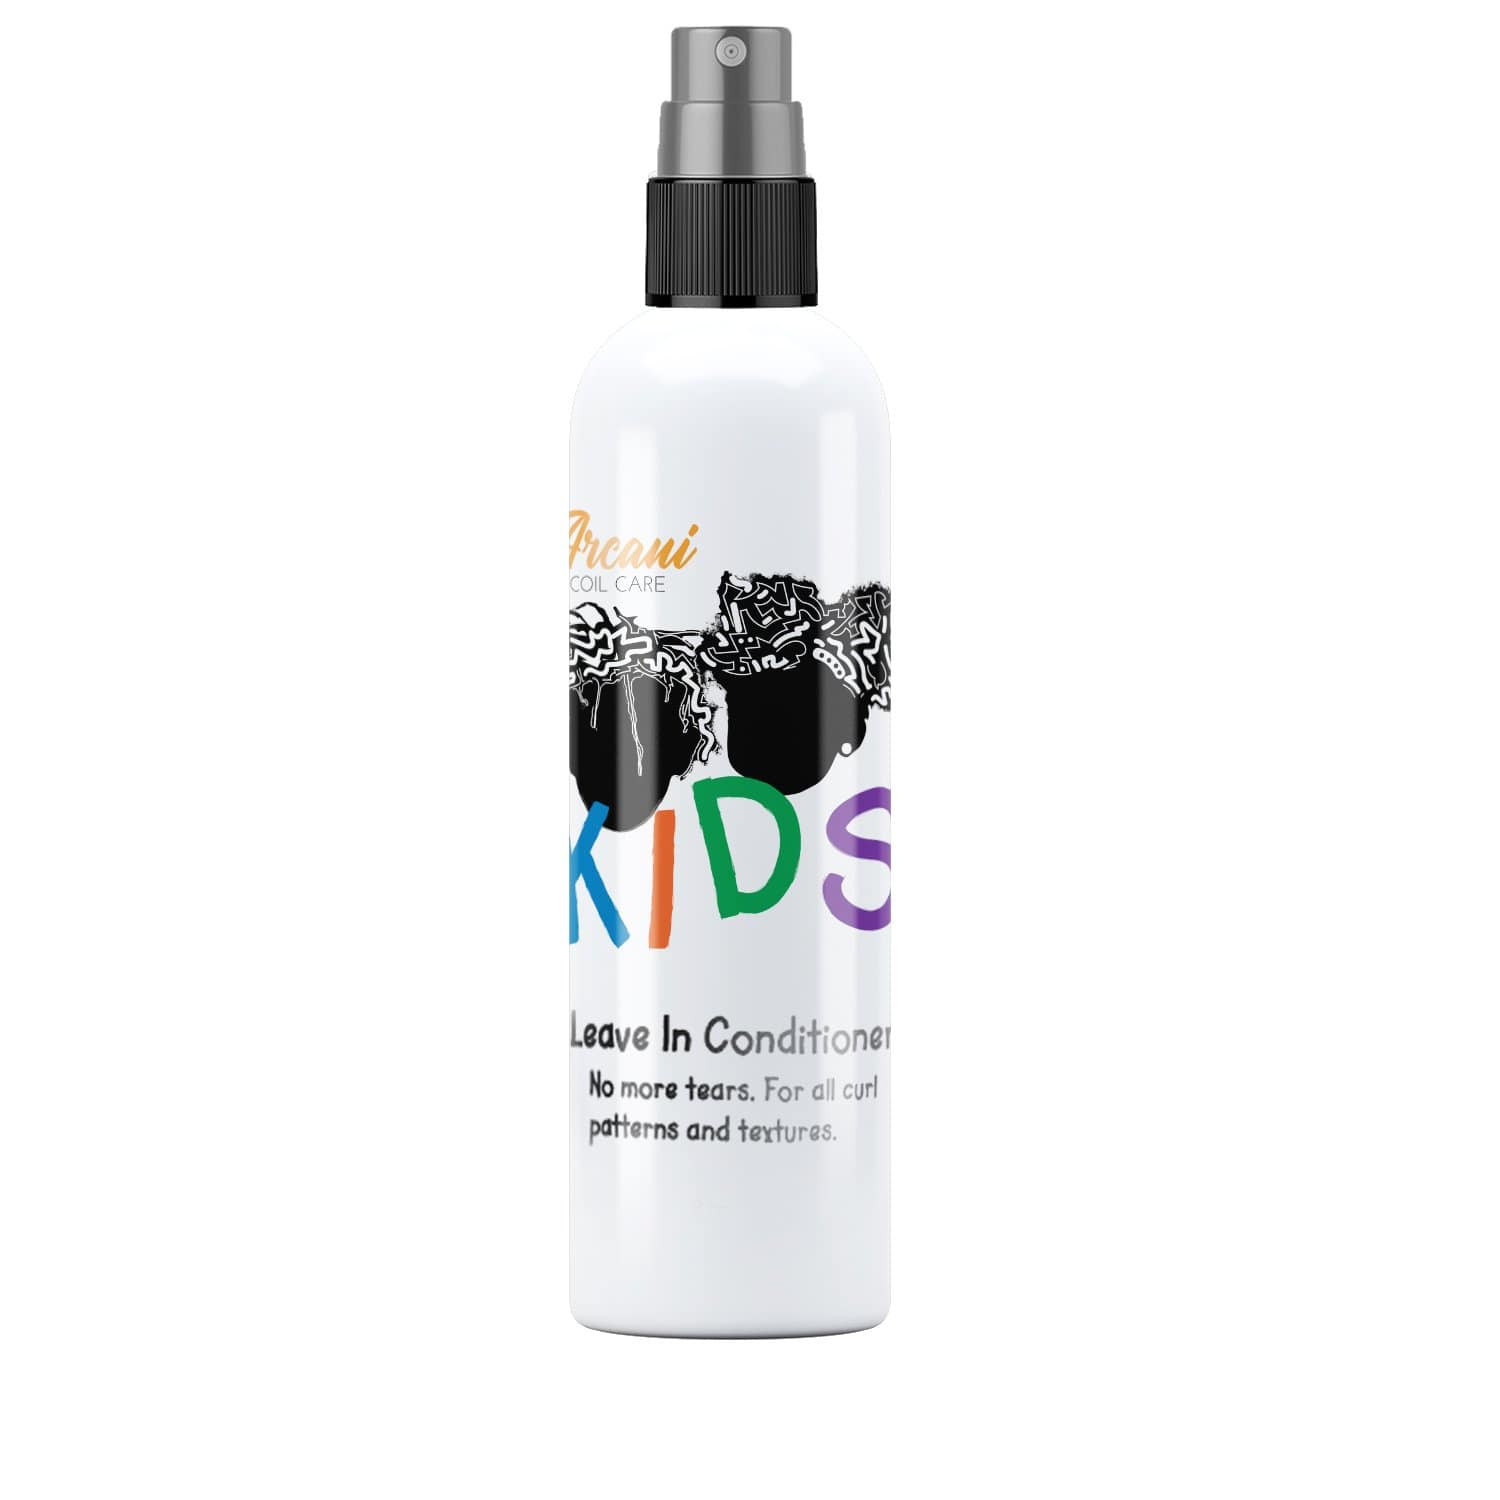 Arcani Coil Care Kids: Leave-In Detangler - Arcani Coil Care